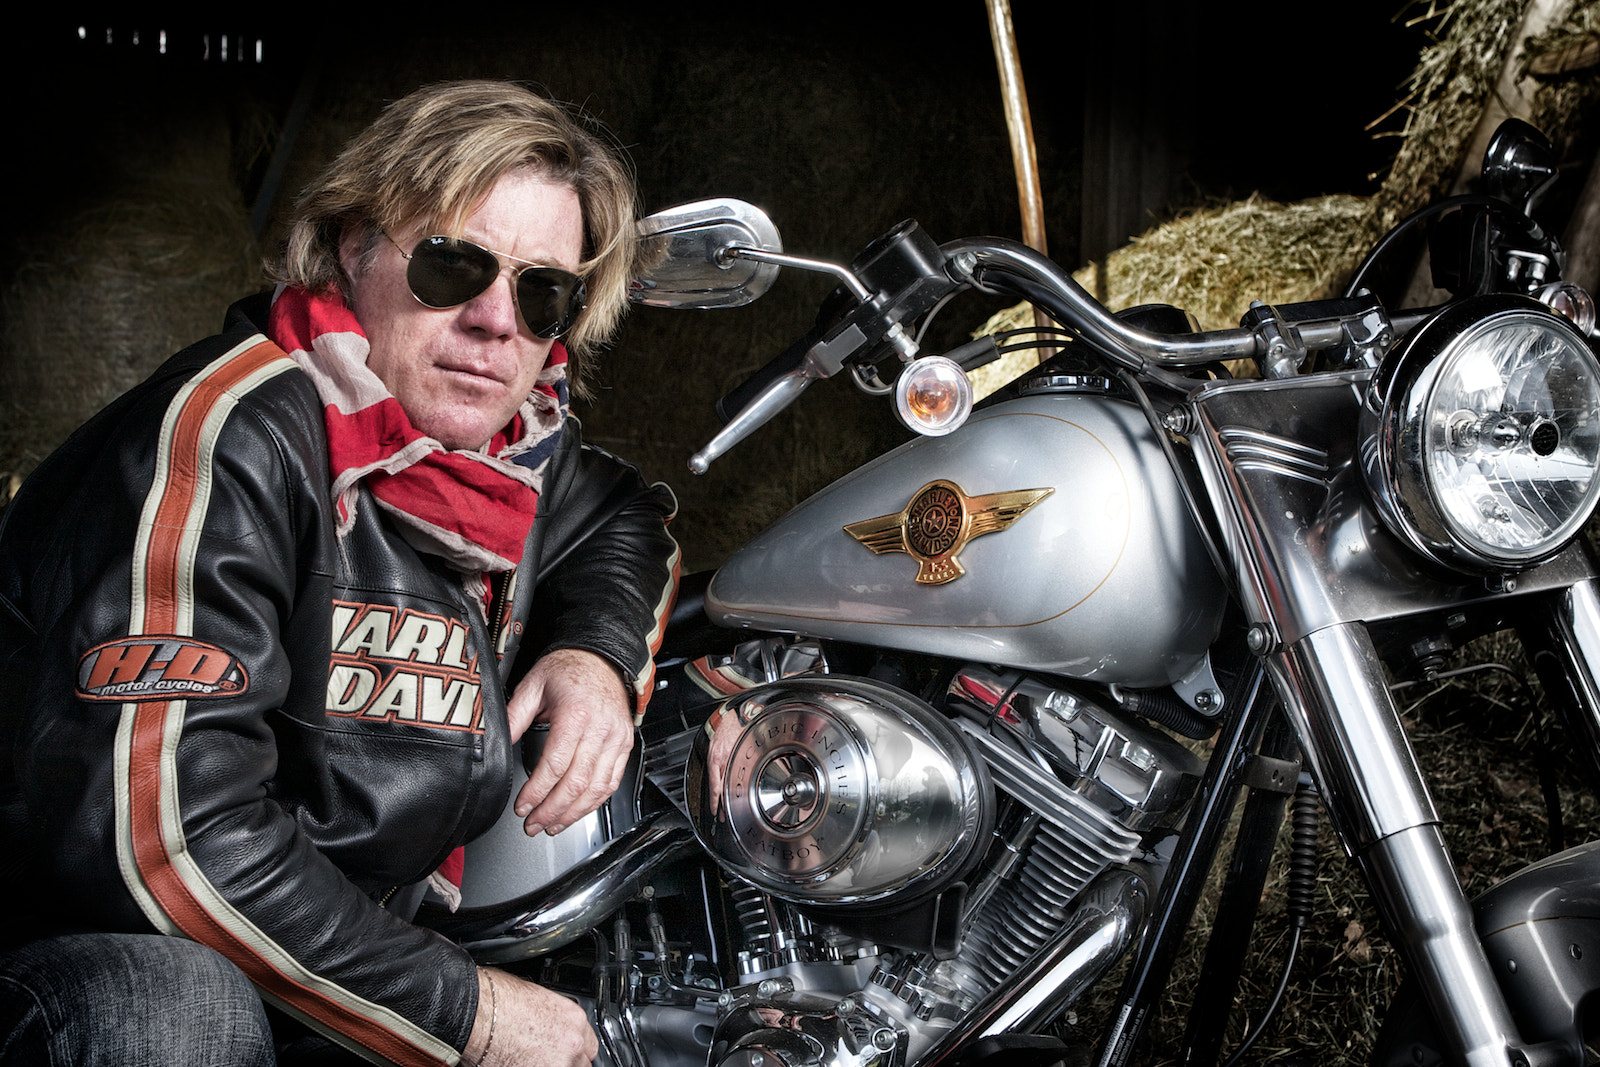 Photograph Harley, A way of life by Stefano Giudici on 500px